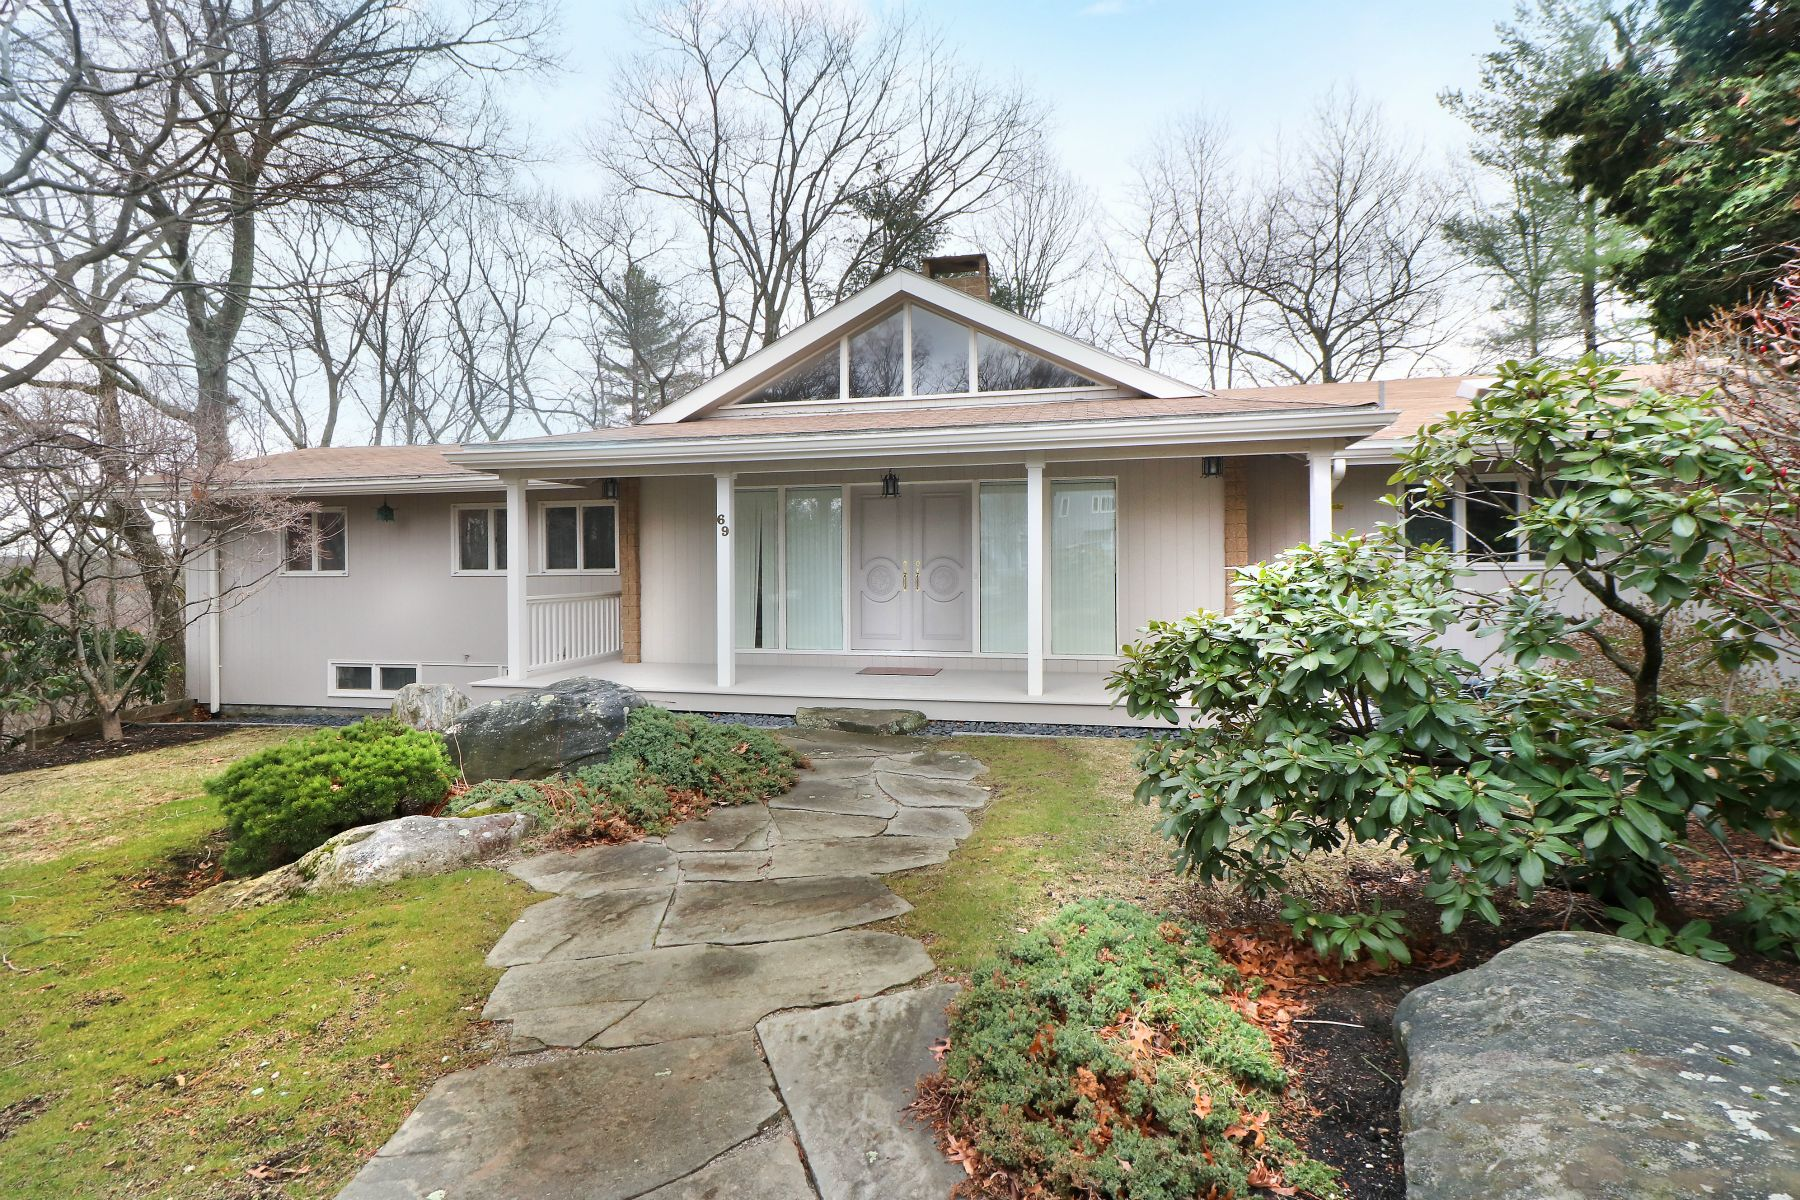 Single Family Home for Sale at 69 Crestwood Rd, Newton Newton, Massachusetts 02465 United States